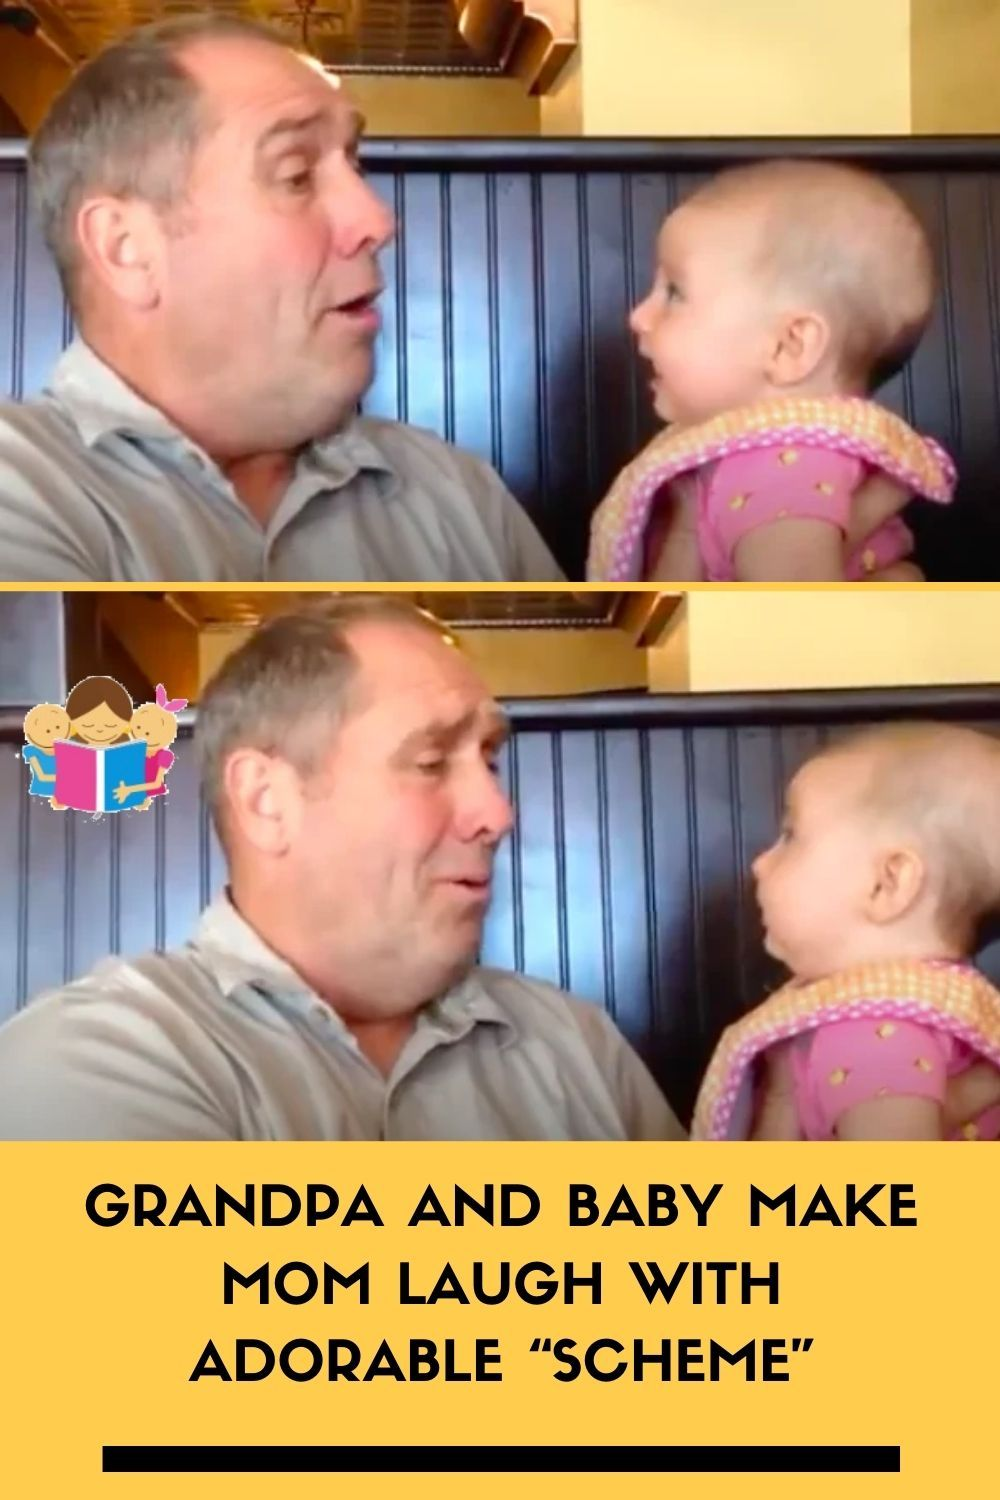 Grandpa And Baby Make Mom Laugh With Adorable Scheme In 2020 Family Parenting Family Kids Kids And Parenting